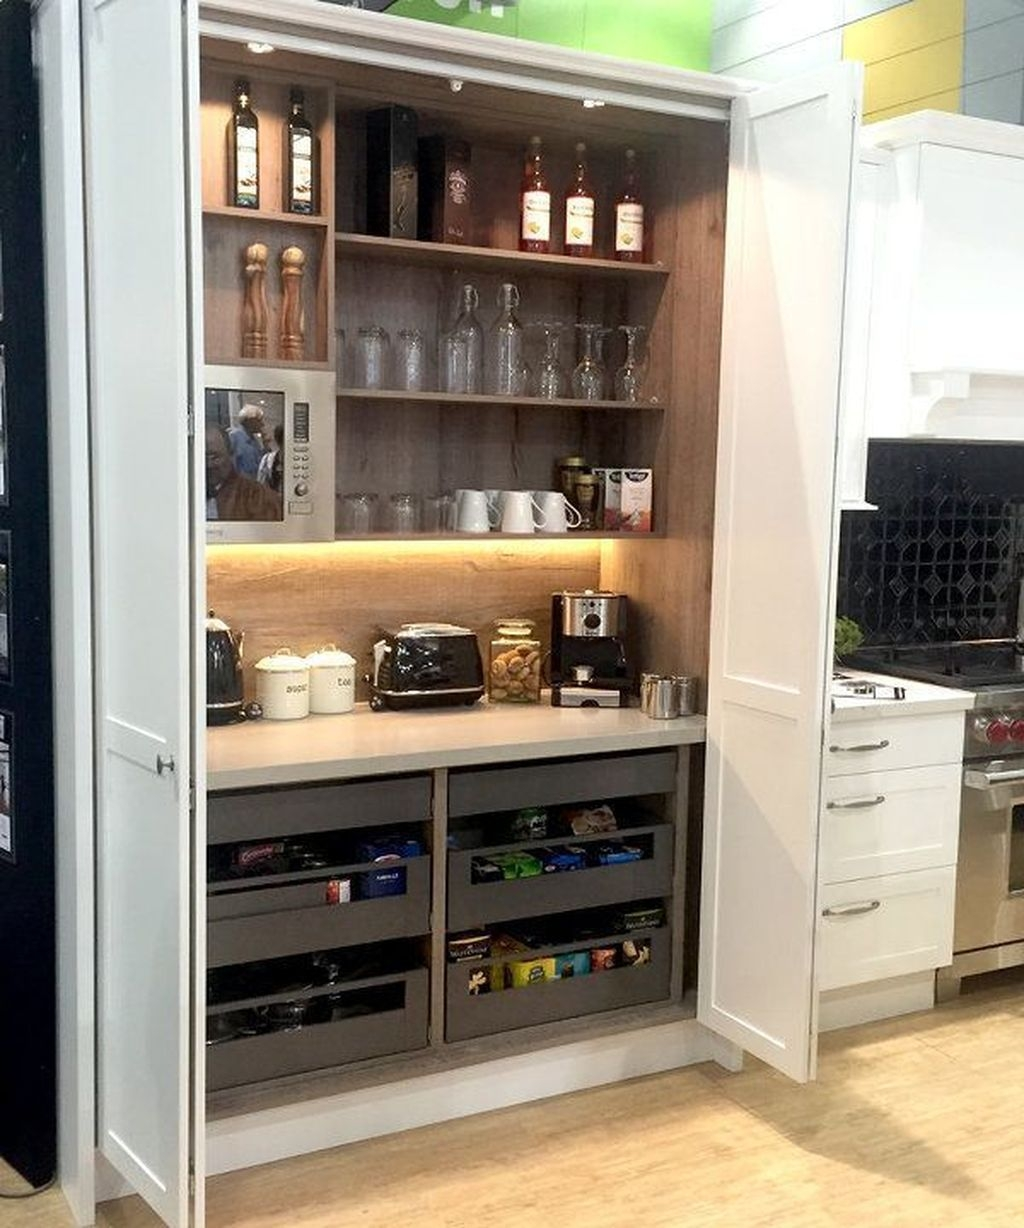 Inspiring Kitchen Storage Design Ideas 45